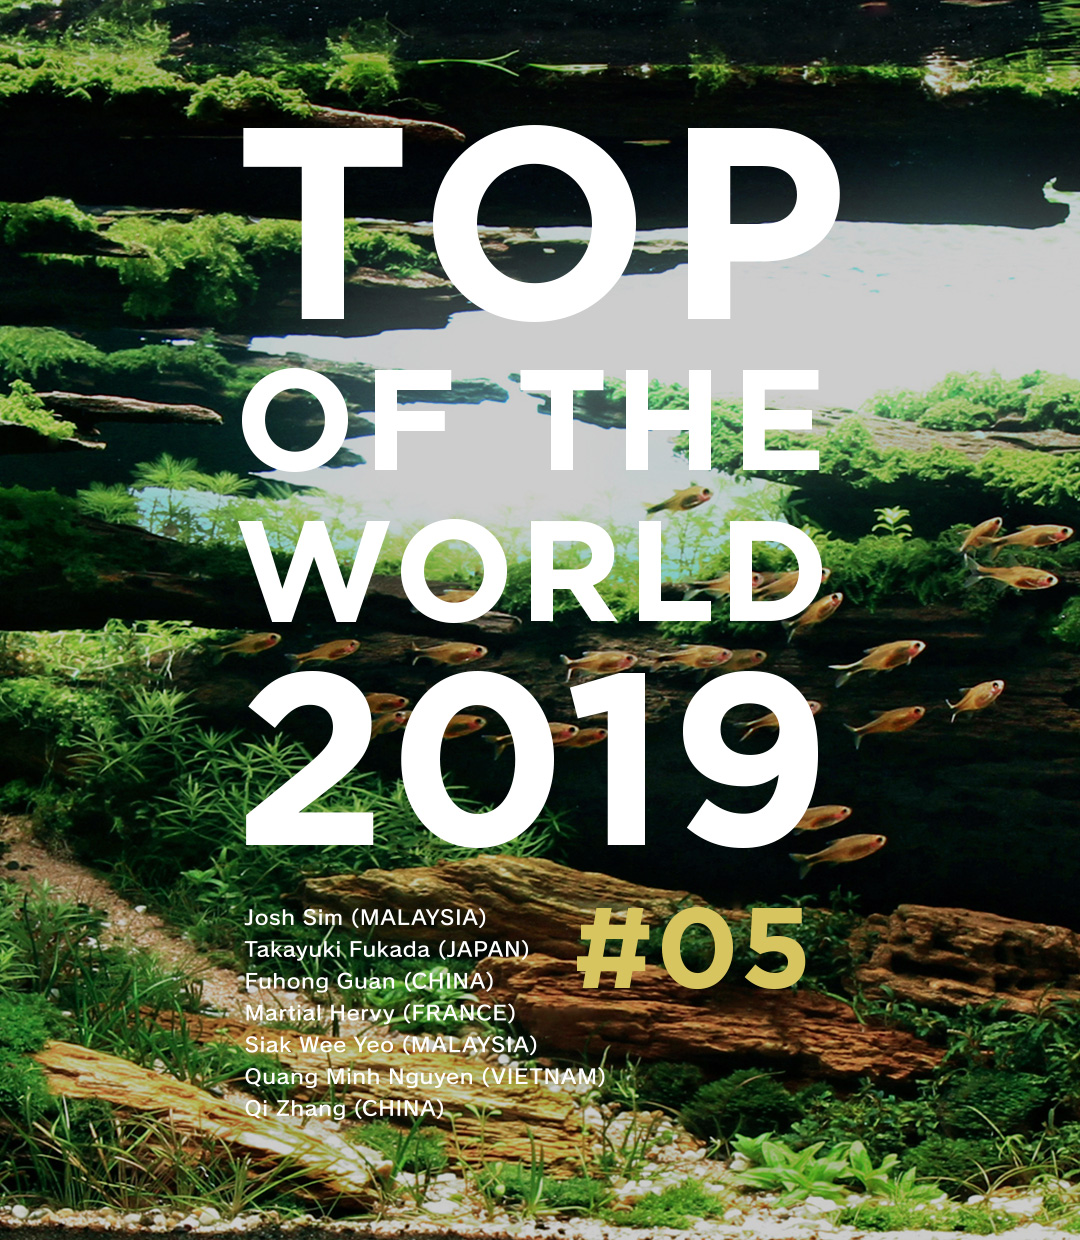 TOP OF THE WORLD 2019 #05